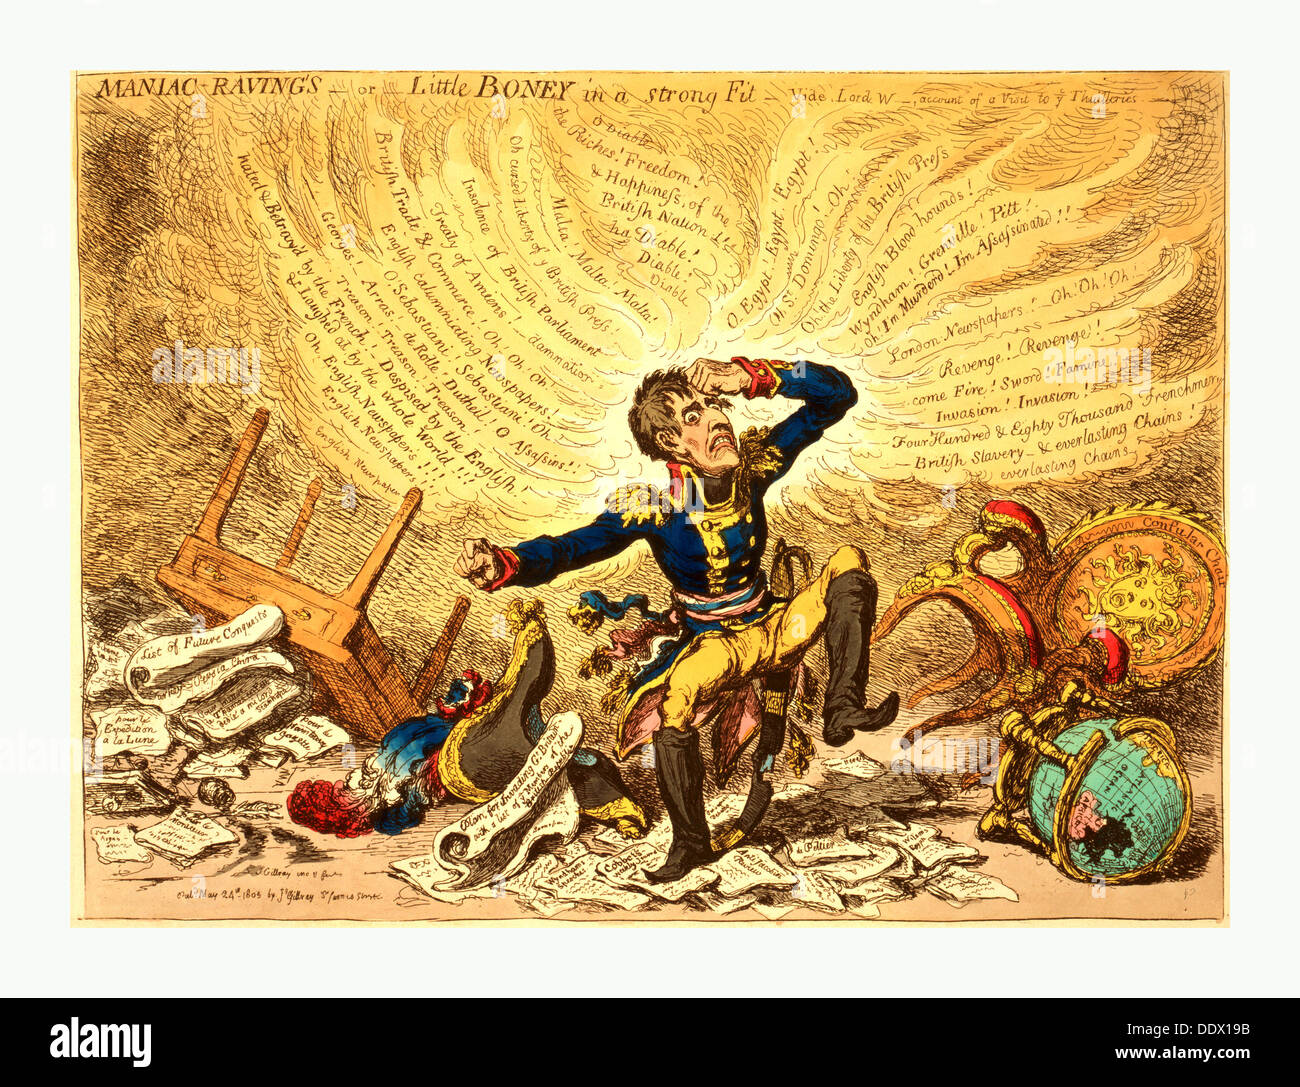 Maniac-raving's or Little Boney in a strong fit, Gillray, James, 1756-1815, engraver, London, 1803,  Napoleon in a fury - Stock Image